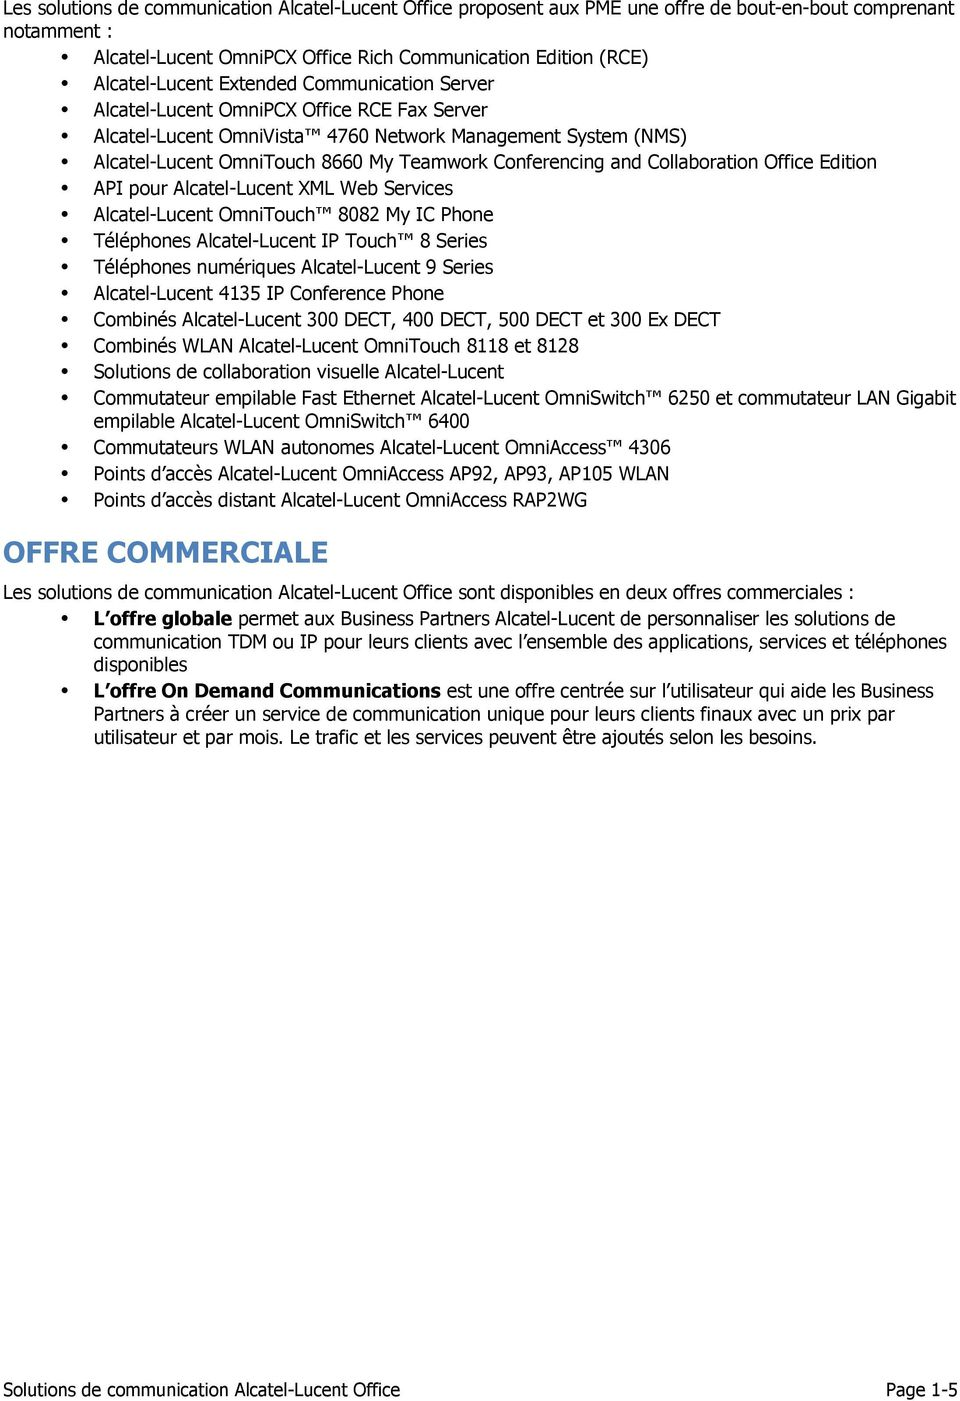 Collaboration Office Edition API pour Alcatel-Lucent XML Web Services Alcatel-Lucent OmniTouch 8082 My IC Phone Téléphones Alcatel-Lucent IP Touch 8 Series Téléphones numériques Alcatel-Lucent 9